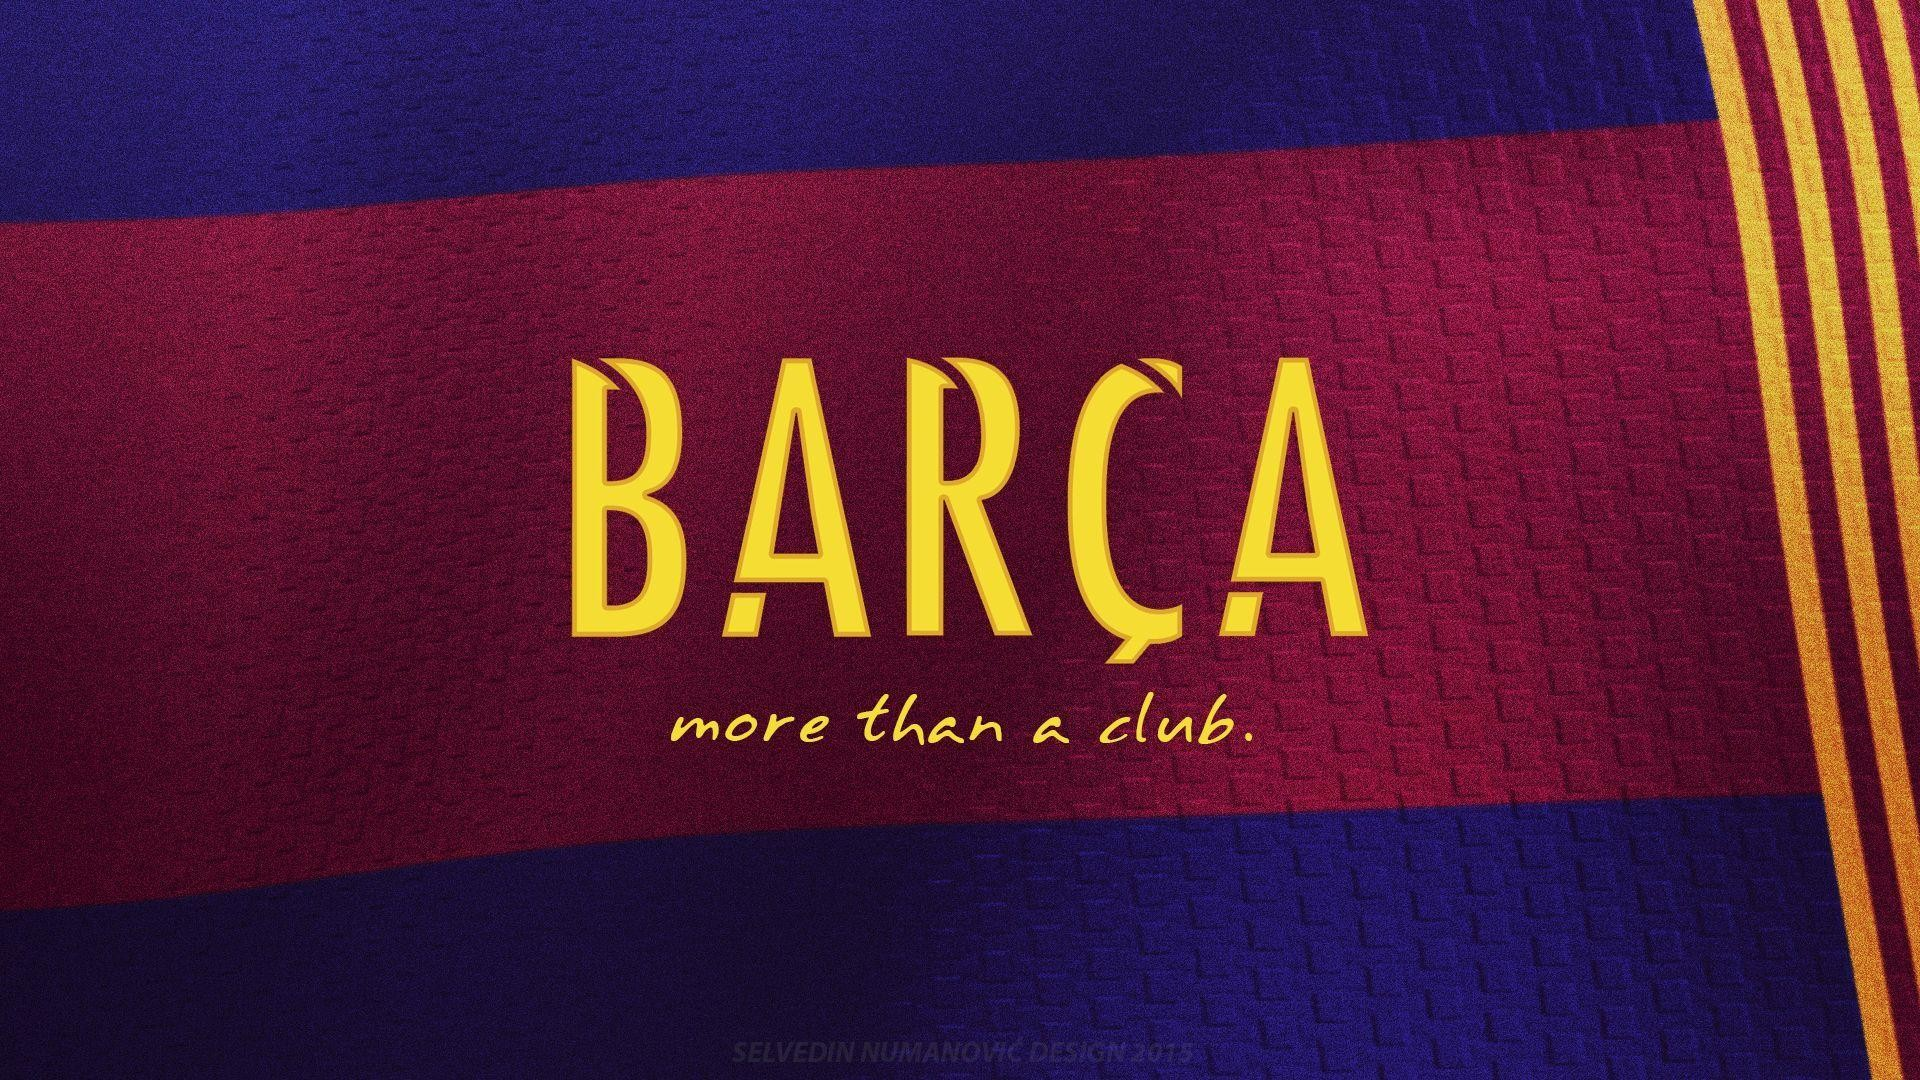 Logo Barcelona Wallpaper Terbaru 2018 ·① WallpaperTag